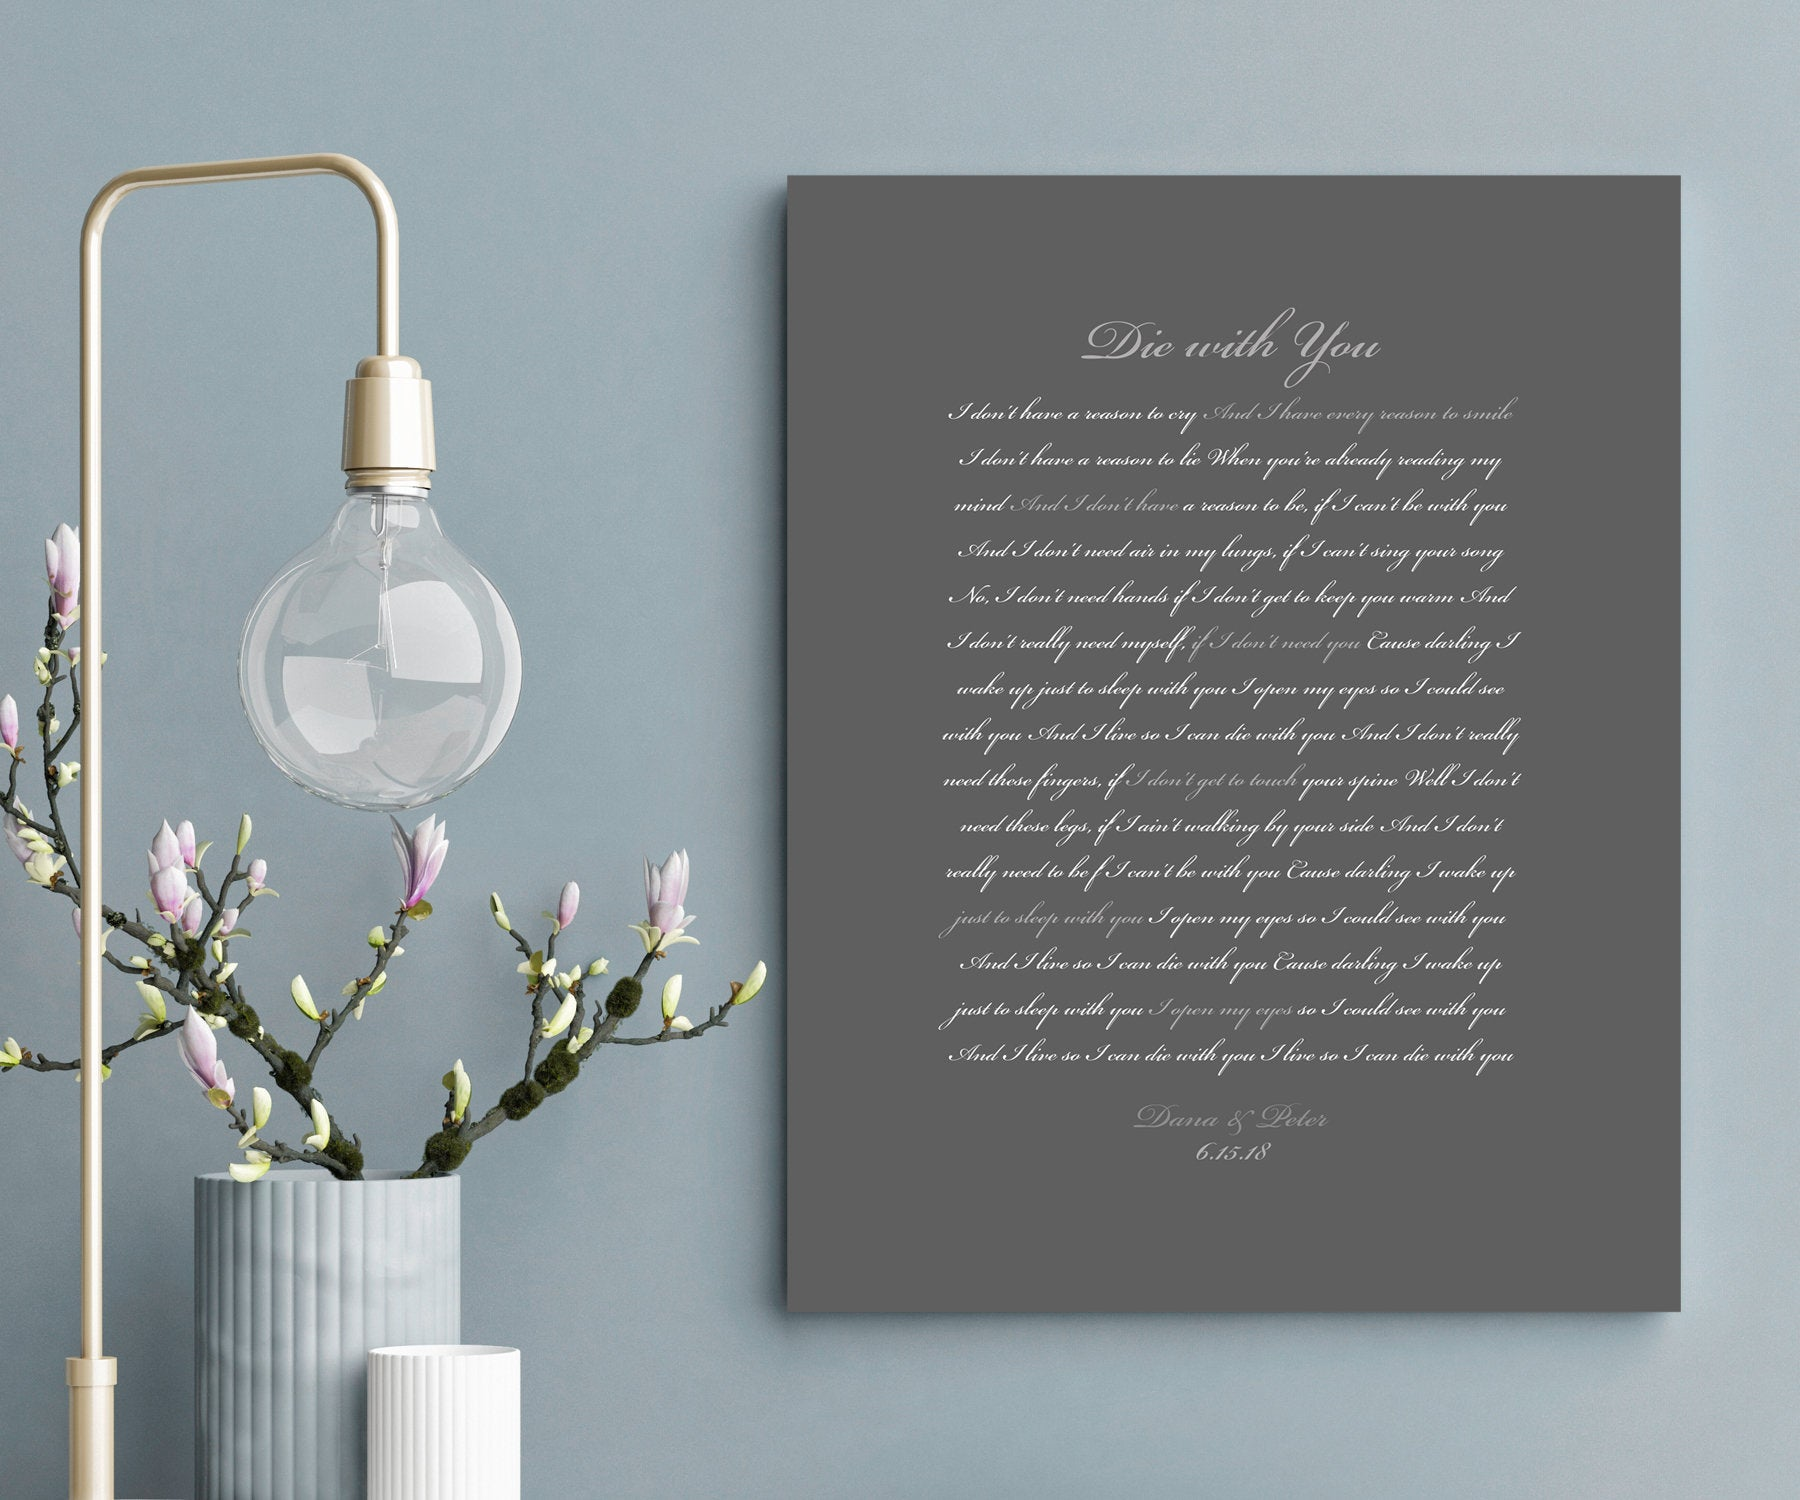 Song Lyrics on Canvas, Custom Printed Quote, modern anniversary gift, Romantic Bedroom decor, Sister Wedding Gift, Wedding Date Print